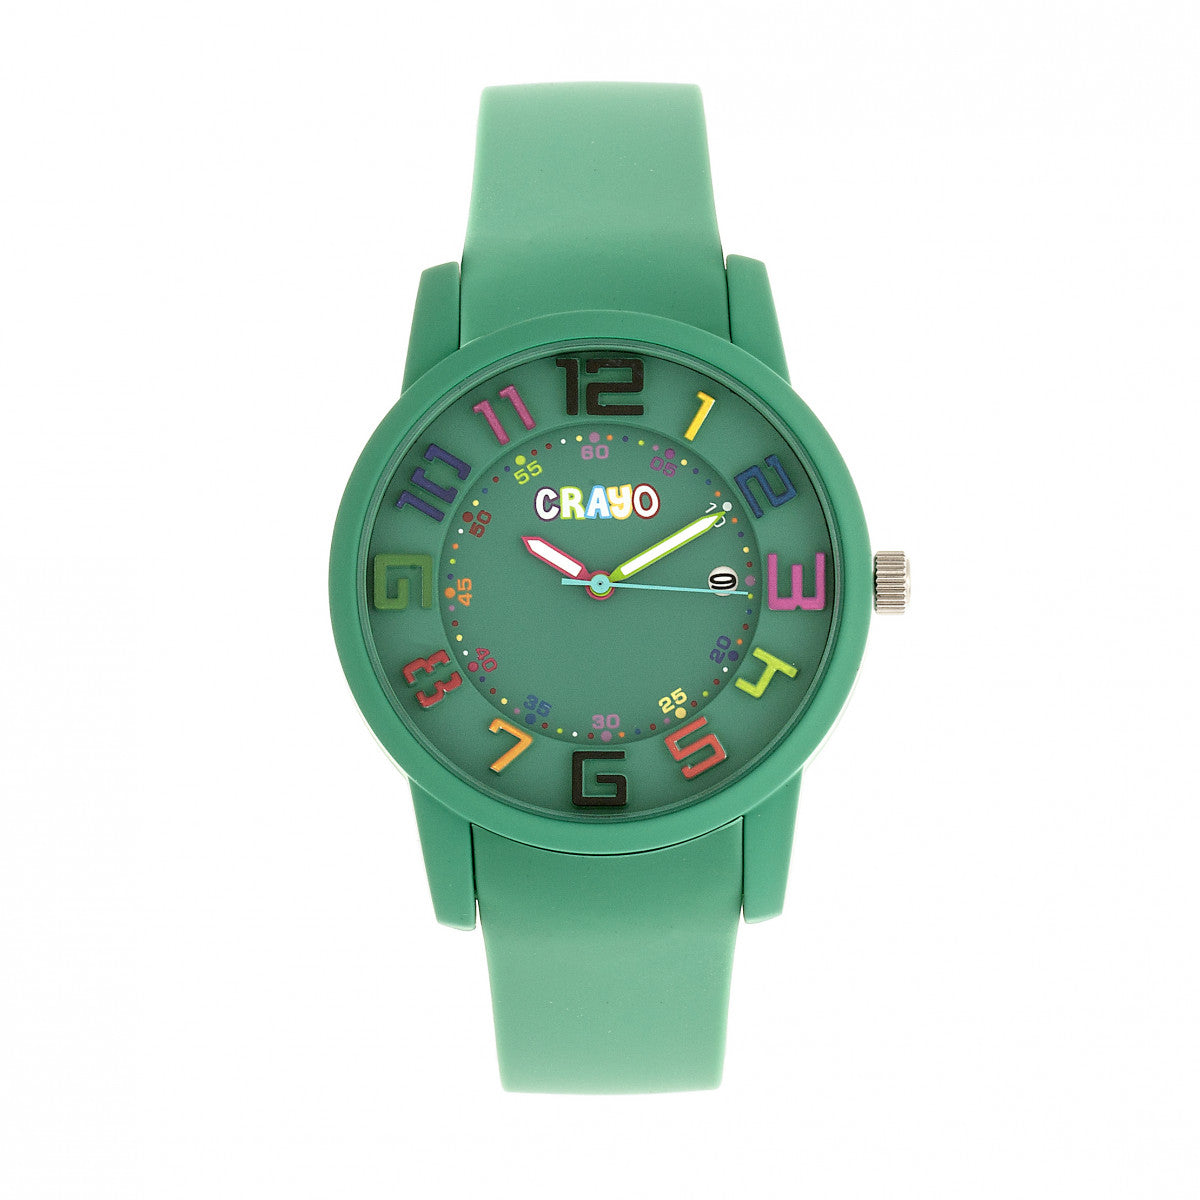 Crayo Festival Unisex Watch w/ Date - Teal - CRACR2003